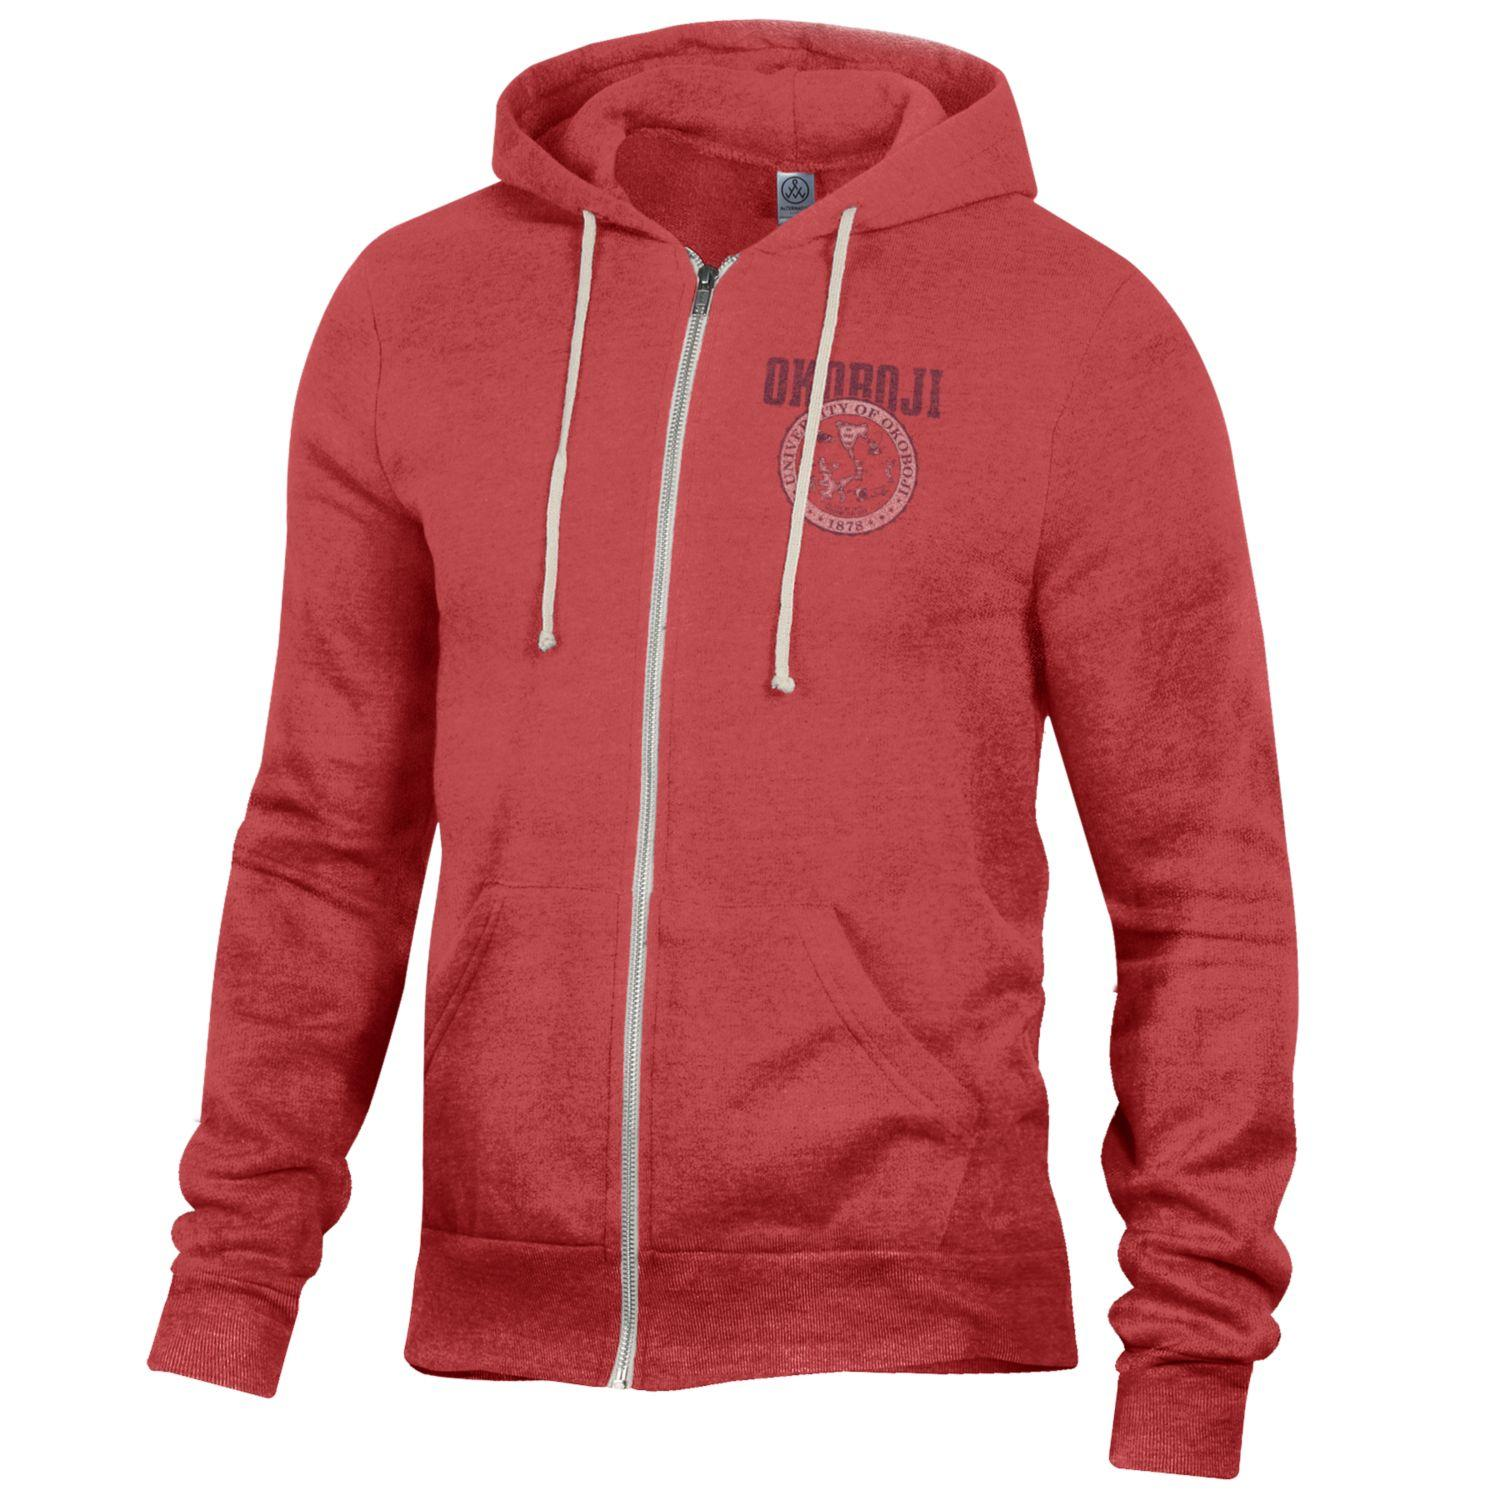 University of Okoboji Crest Rocky Hoodie - Eco True Red